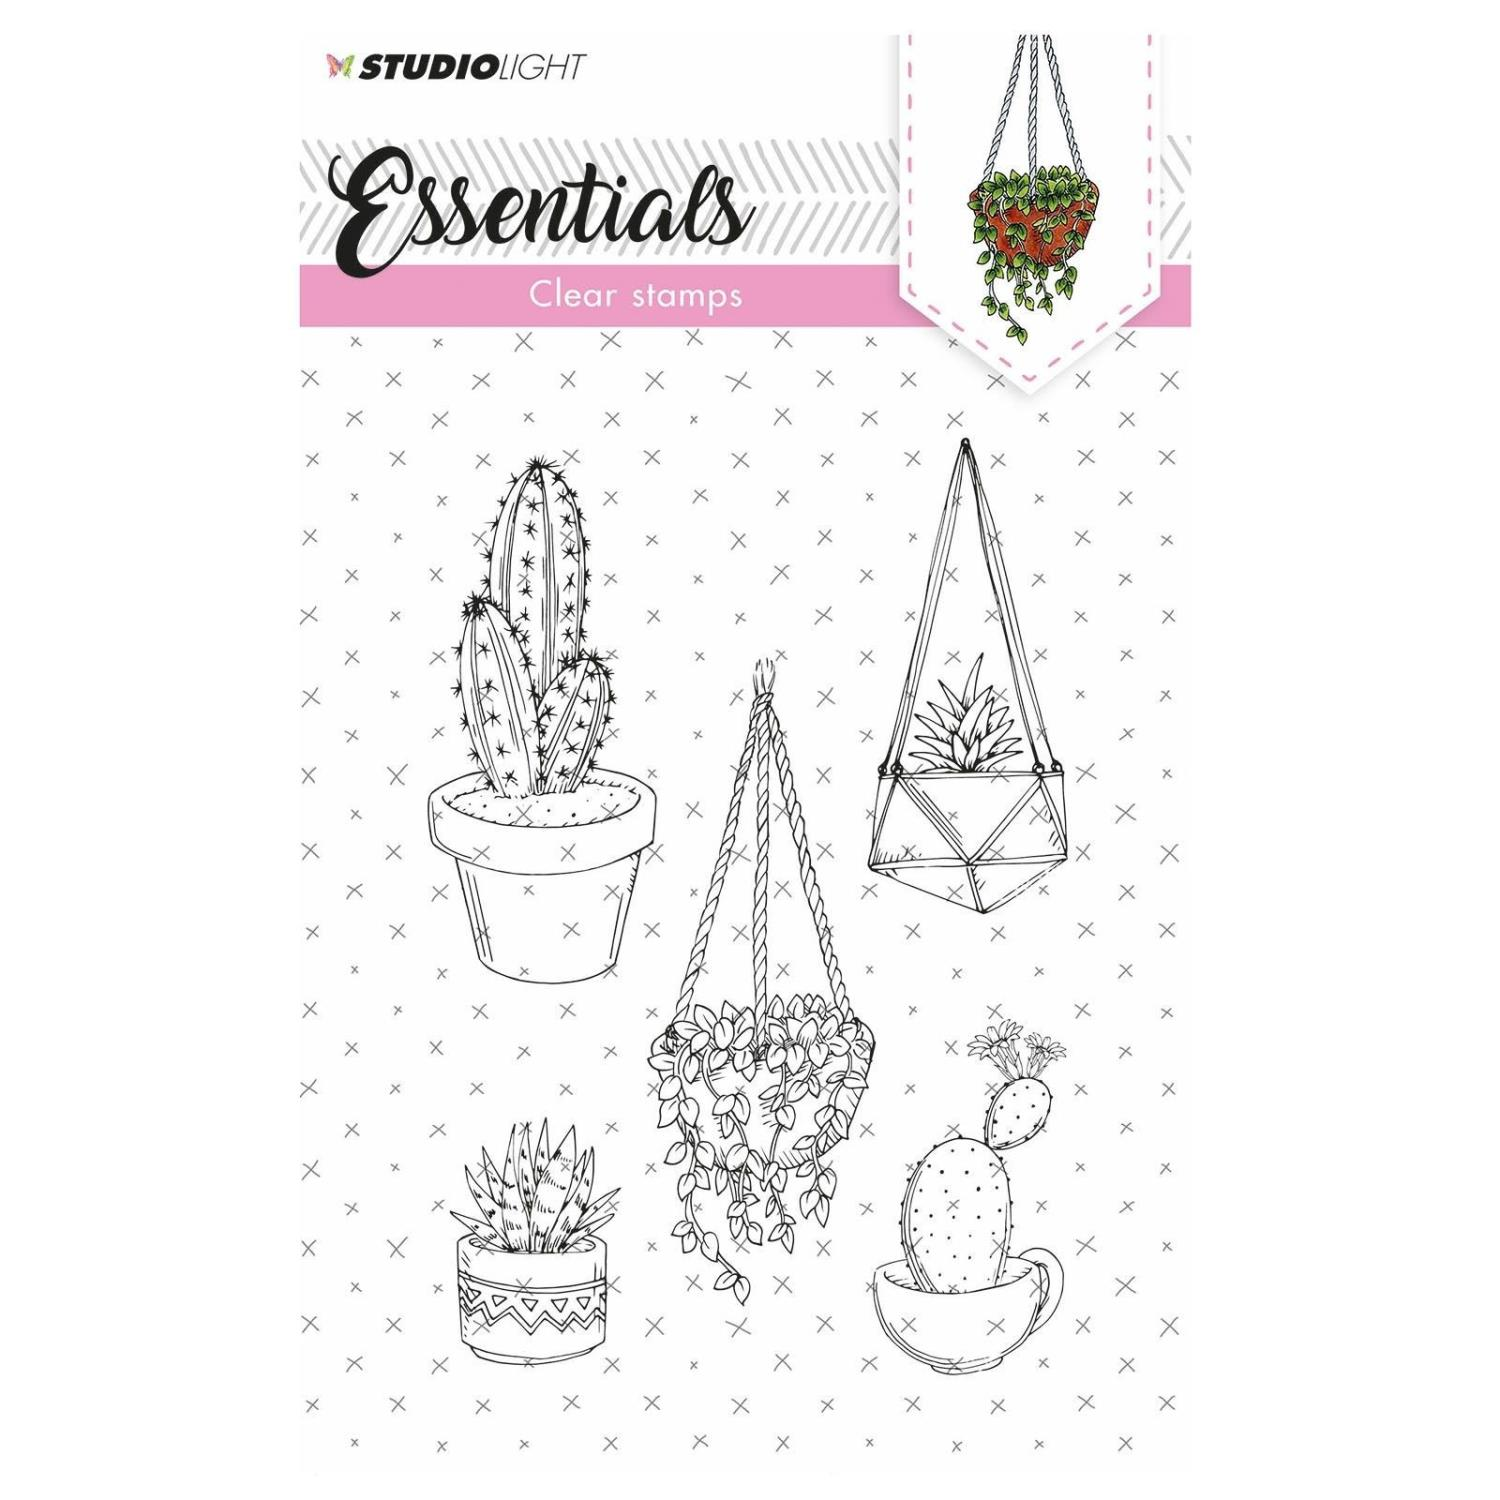 Studio Light clear stamp A6 Essentials nr.307